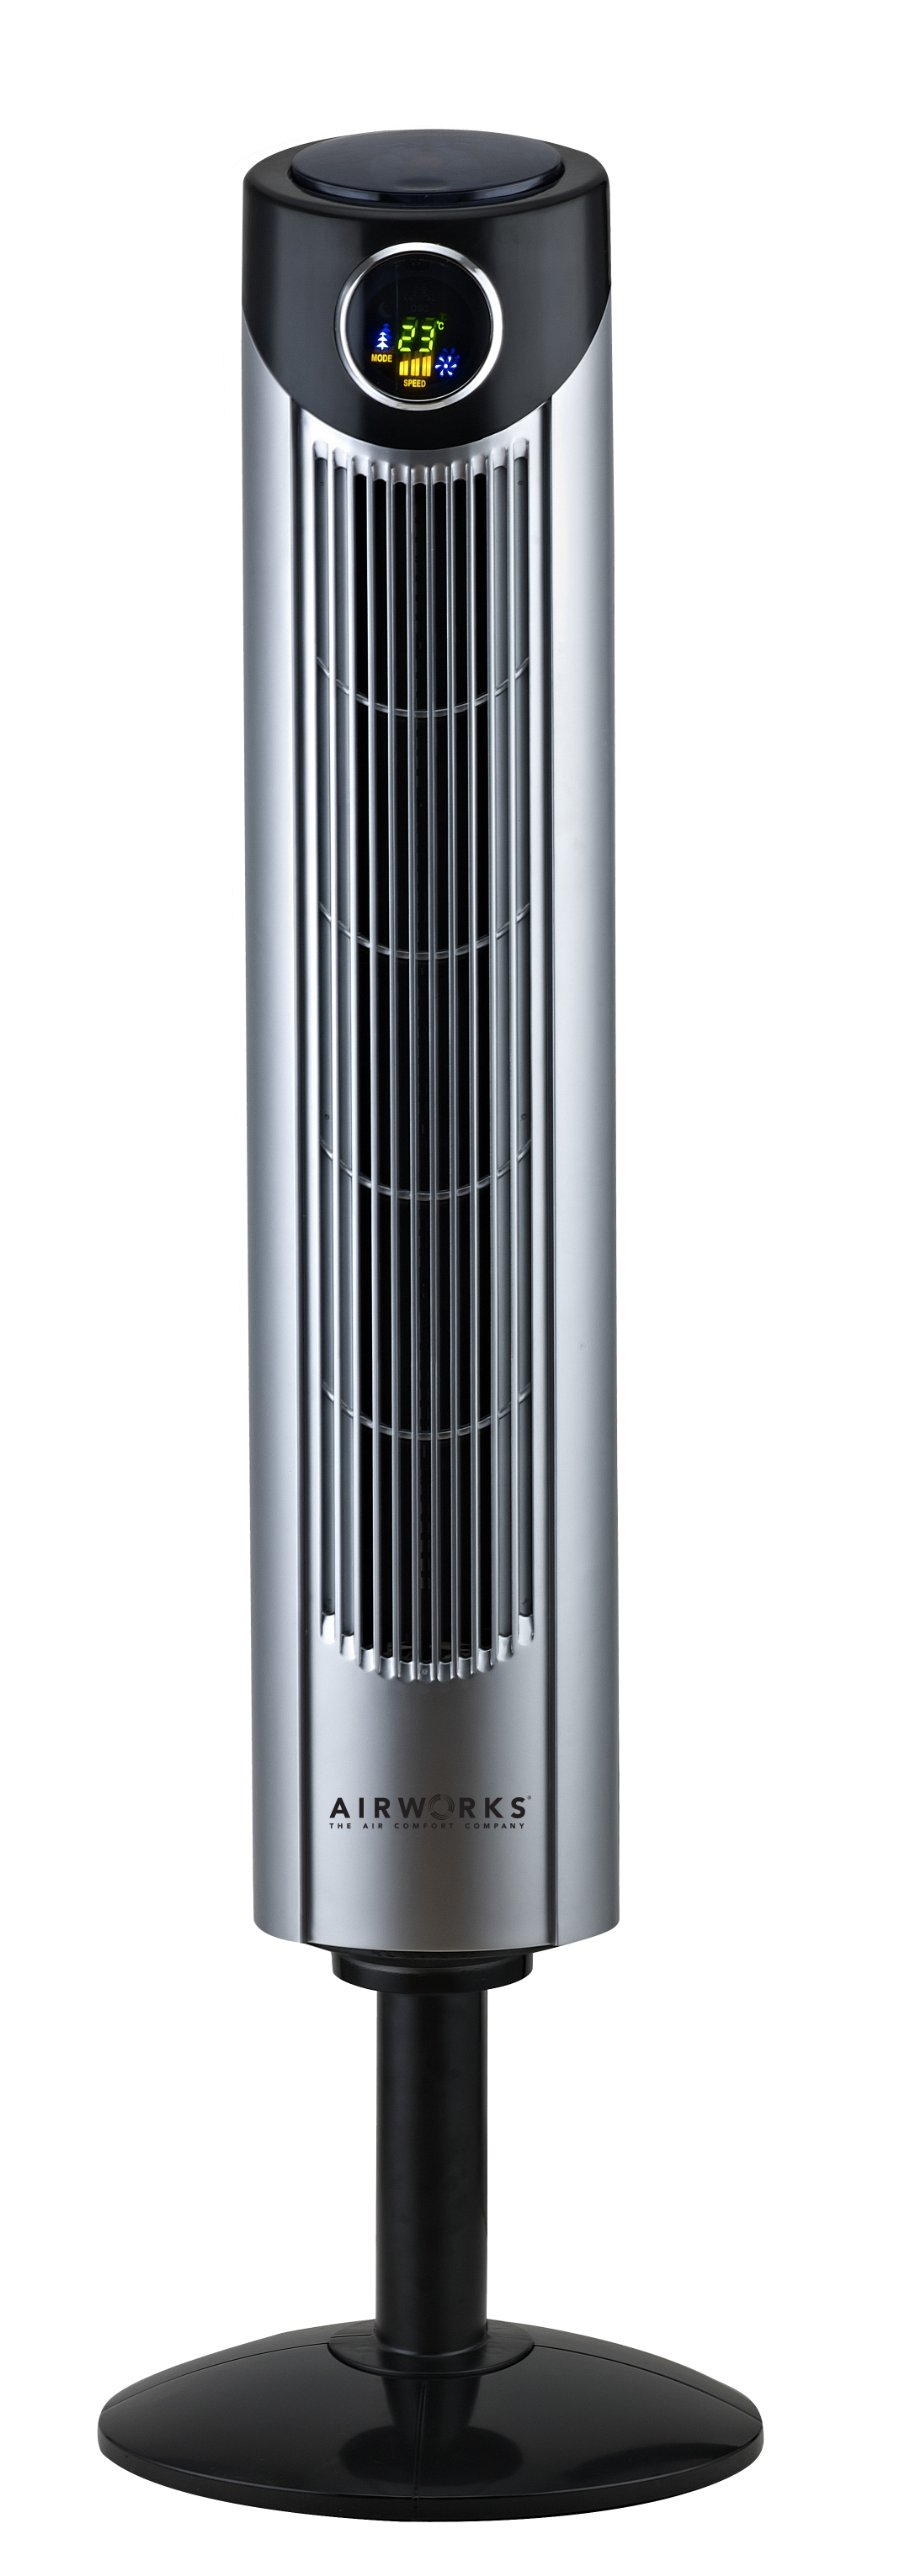 Airworks 42'' tower fan with remote control by AirWorks